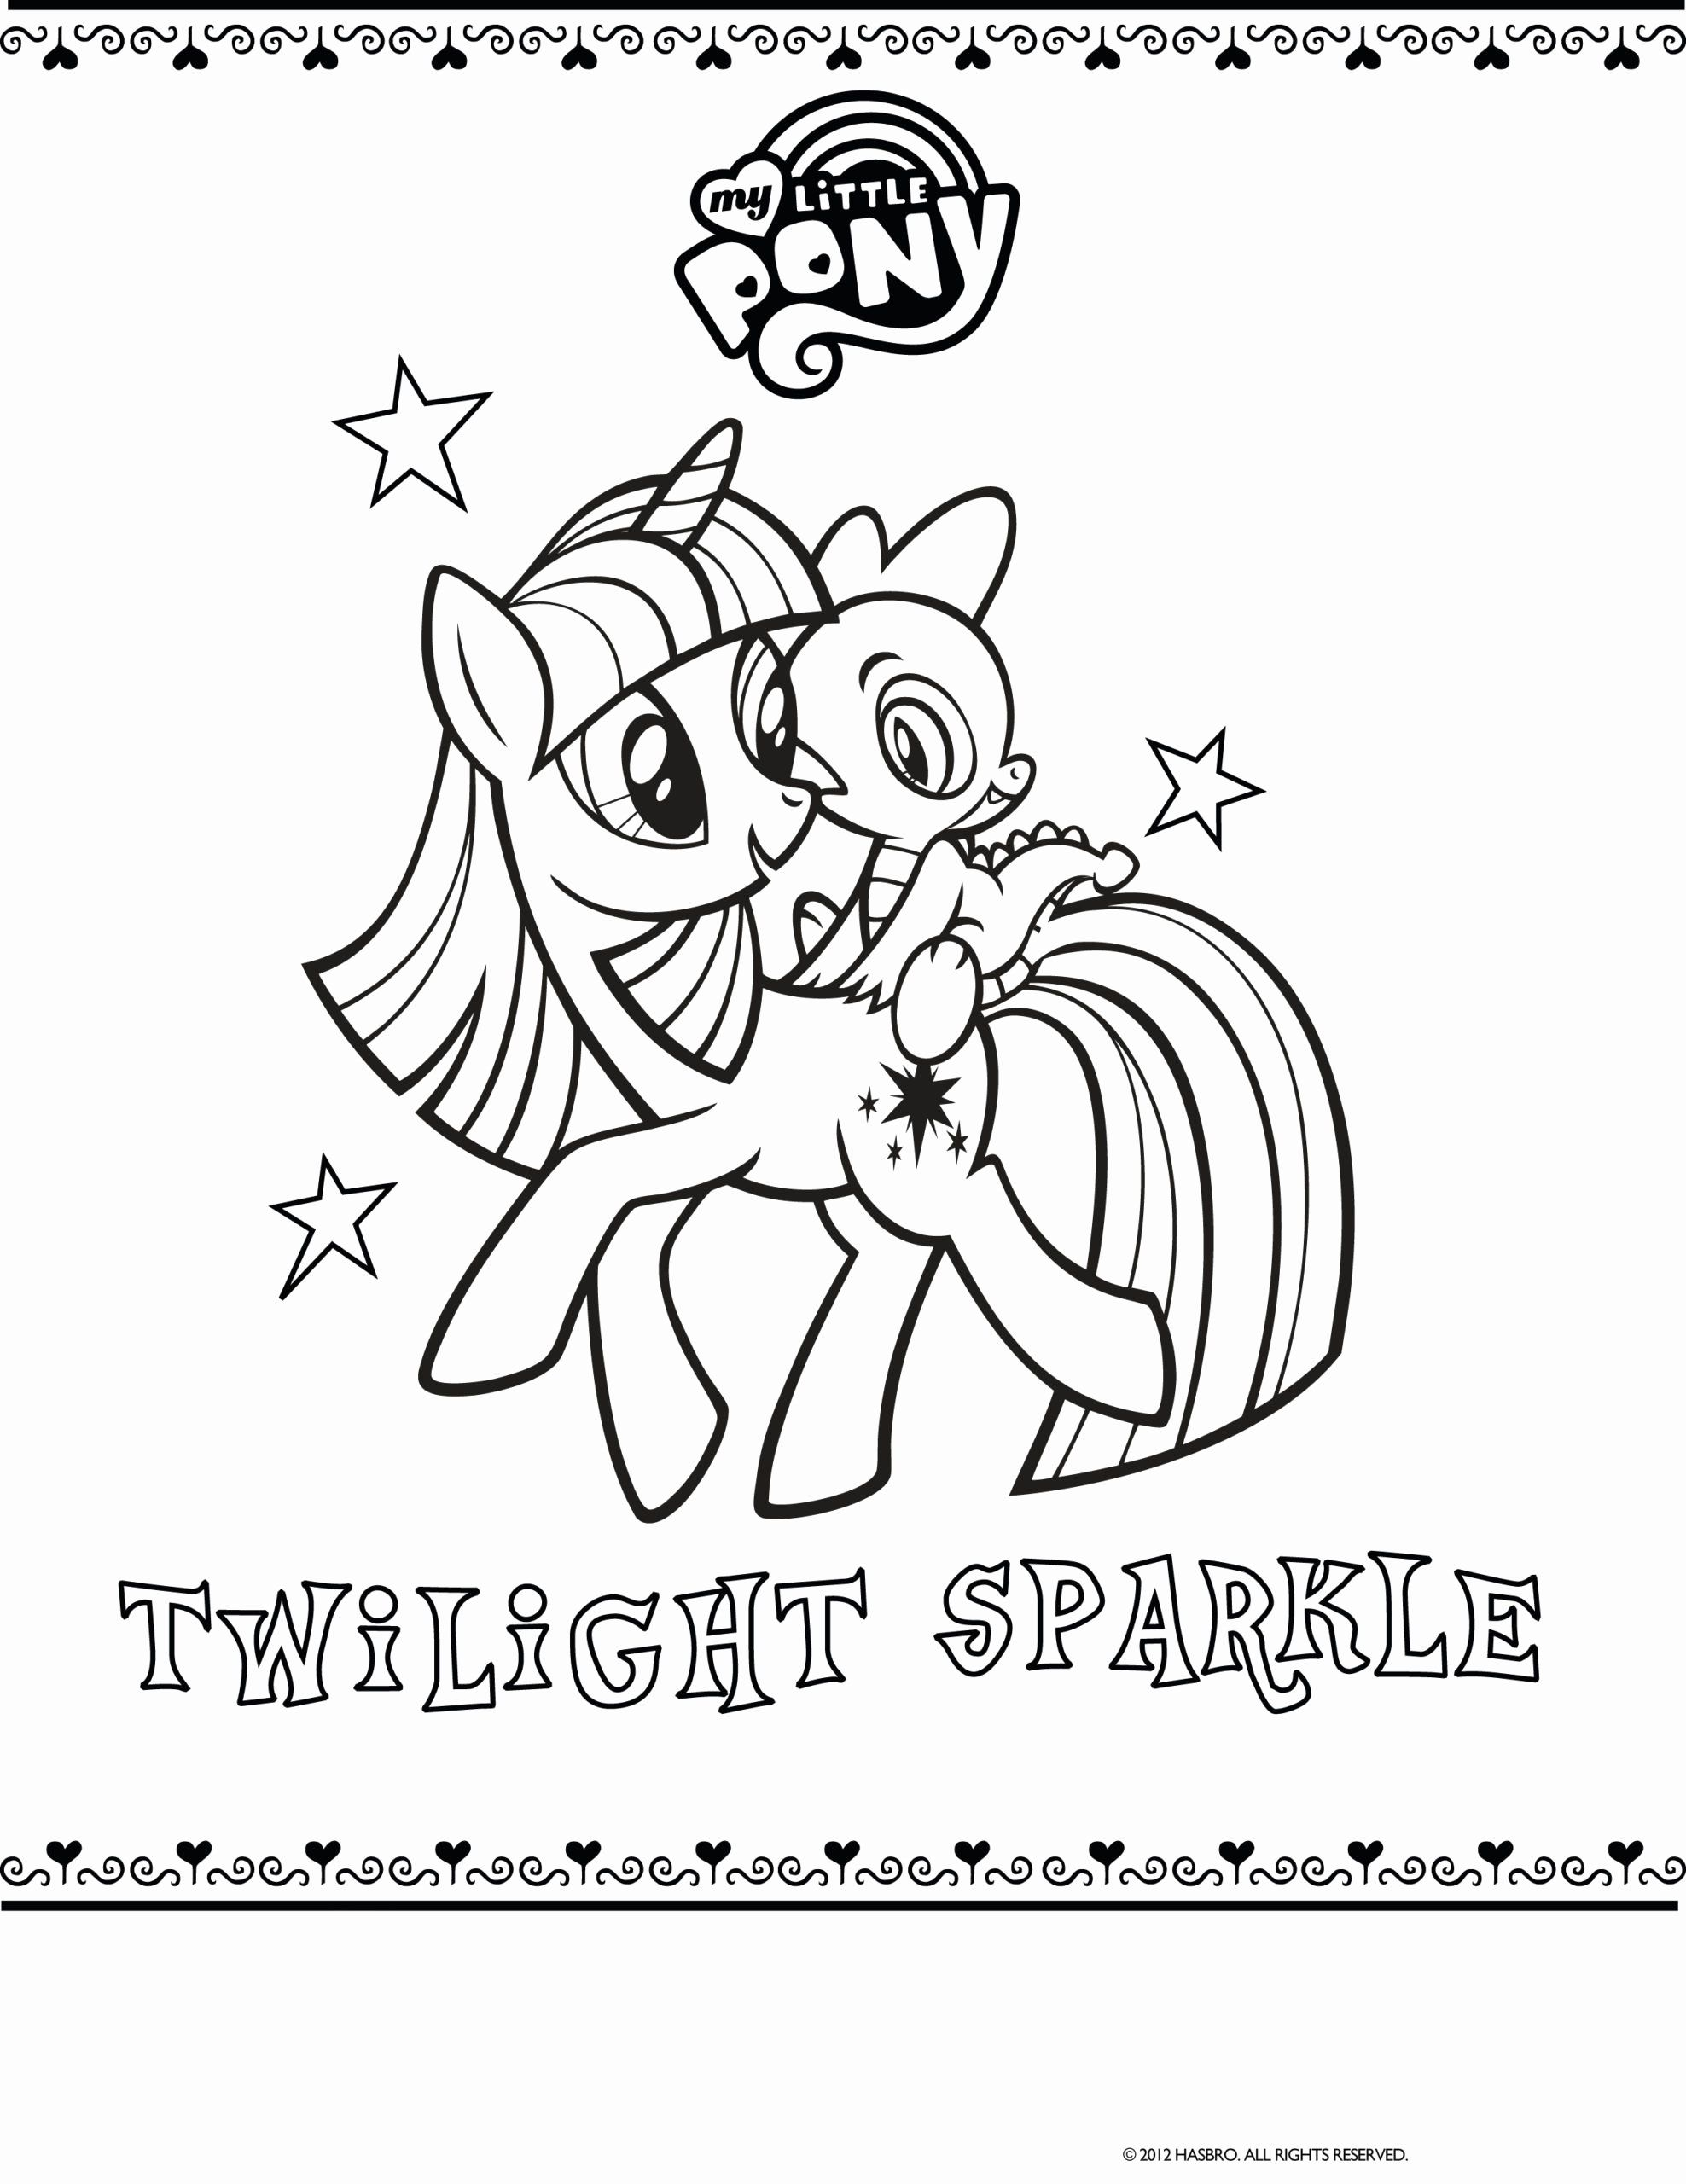 My Little Pony Printable Coloring Pages Elegant Coloring Pages My Little Pony Cartoons In 2020 My Little Pony Coloring My Little Pony Twilight My Little Pony Printable